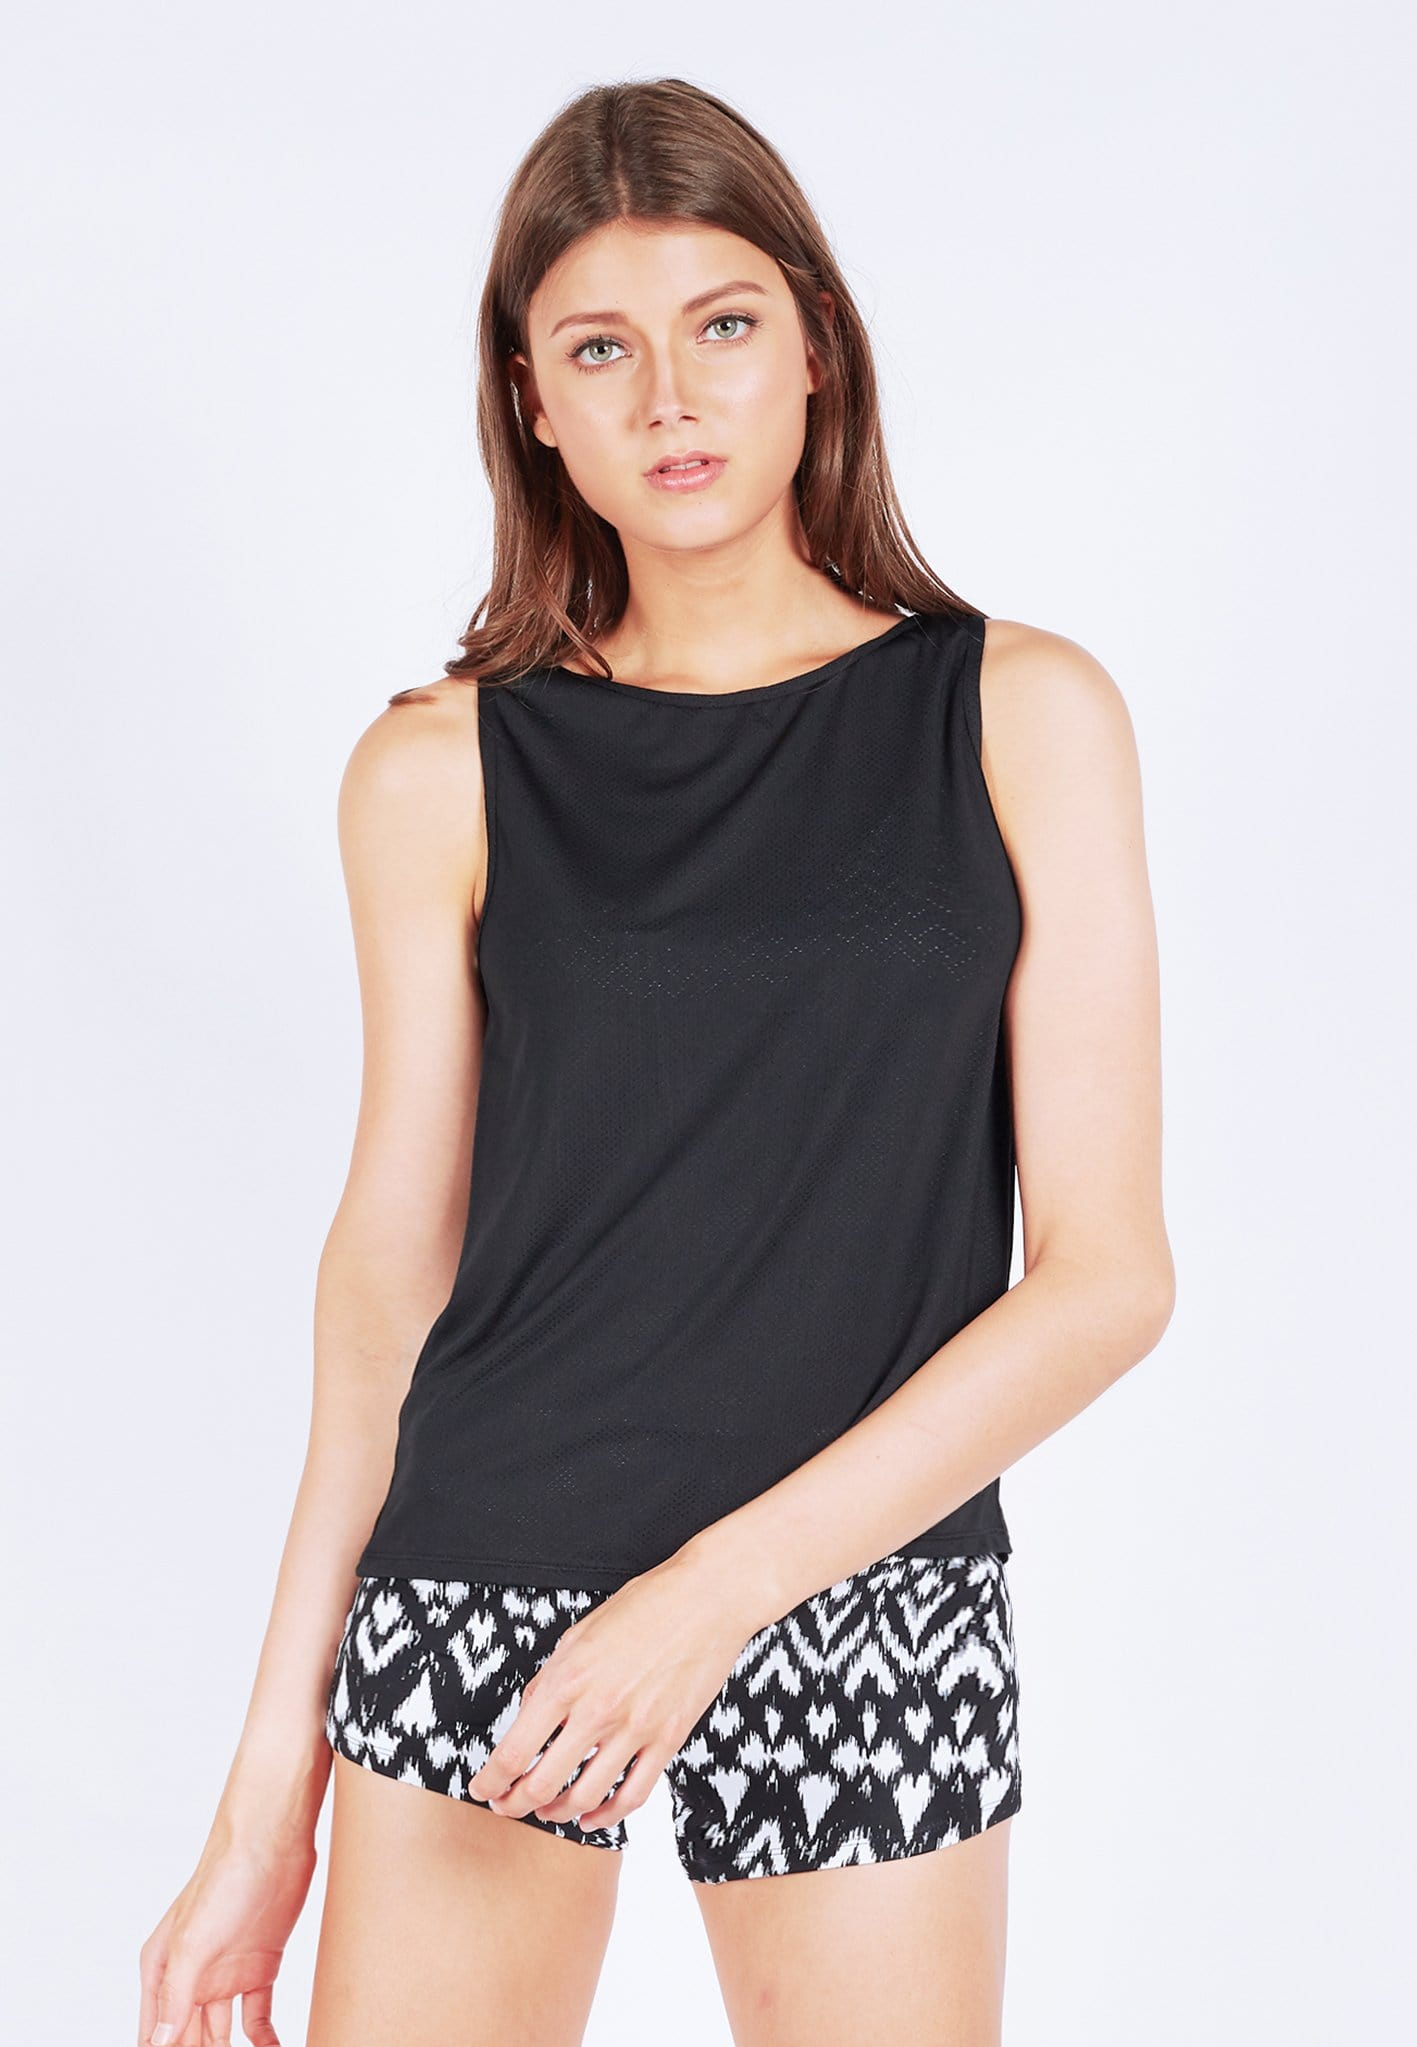 Uplift Tank Top with (Open Back) in Black (S - XL)